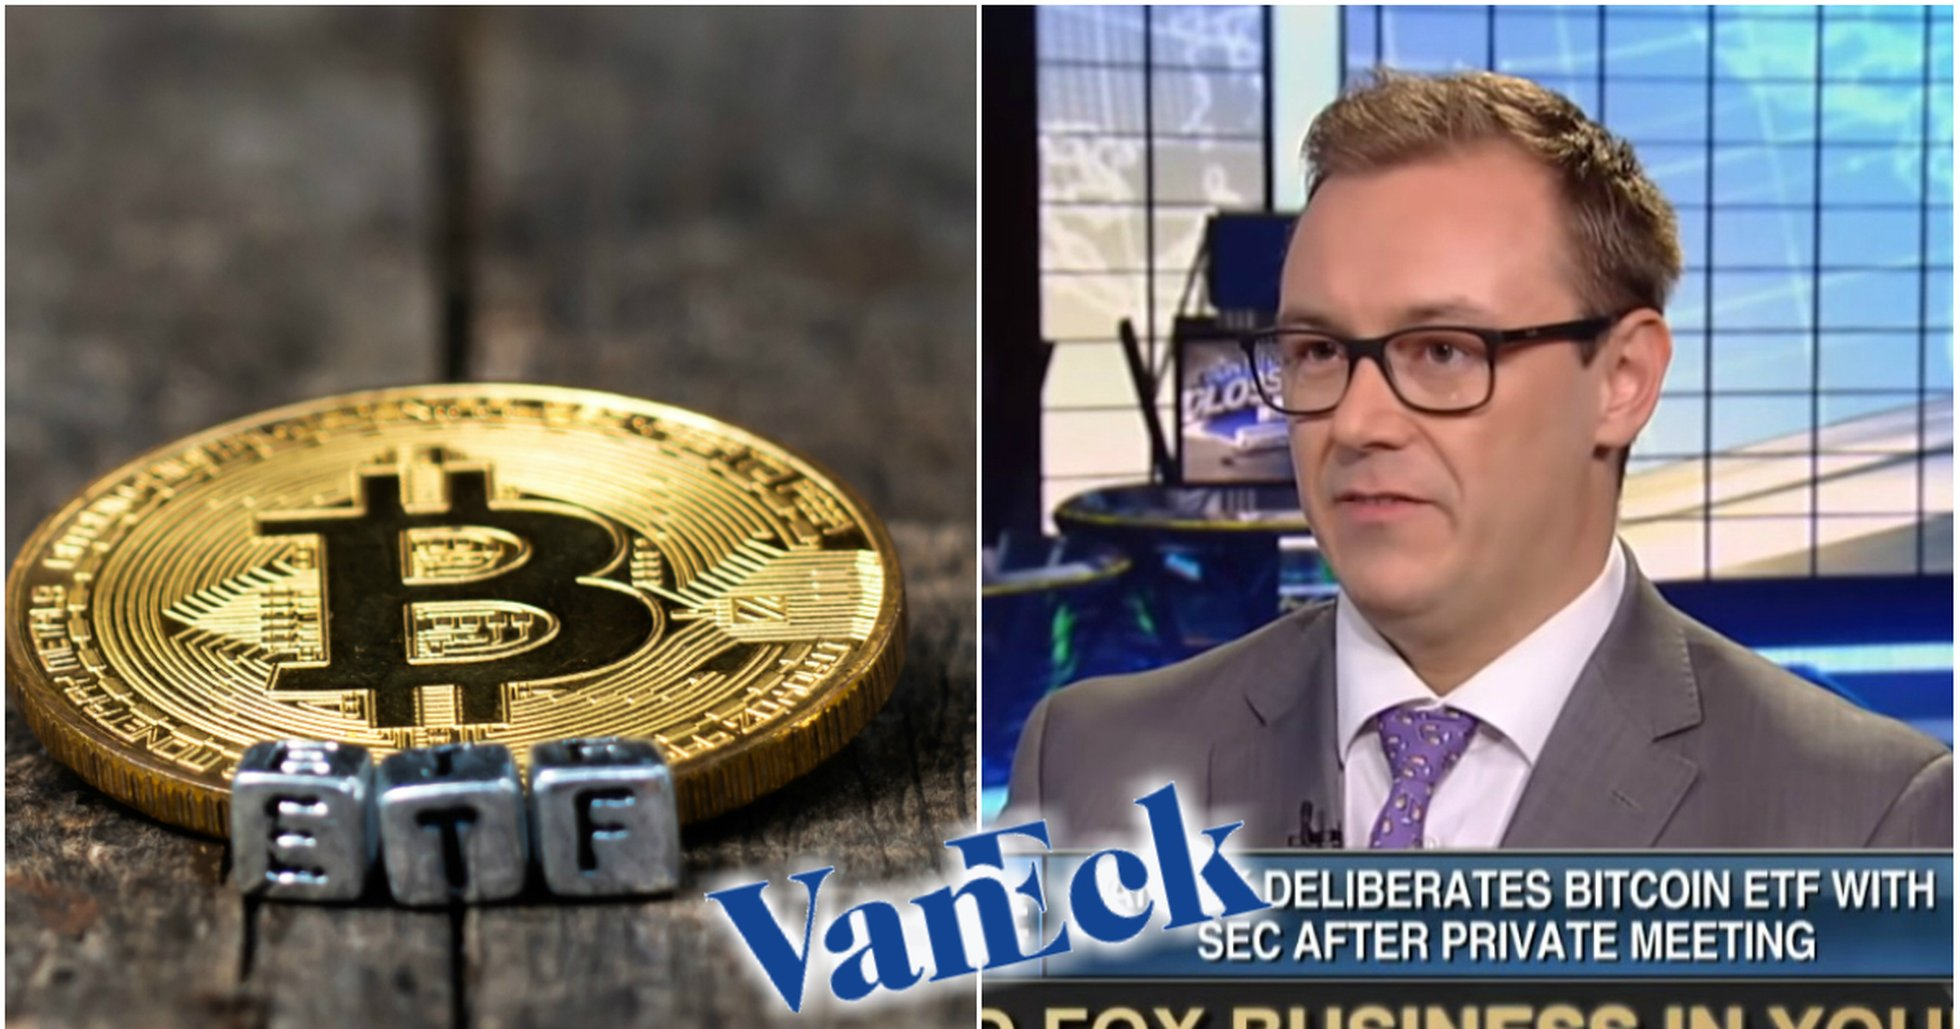 Fund manager Vaneck about their bitcoin ETF application: